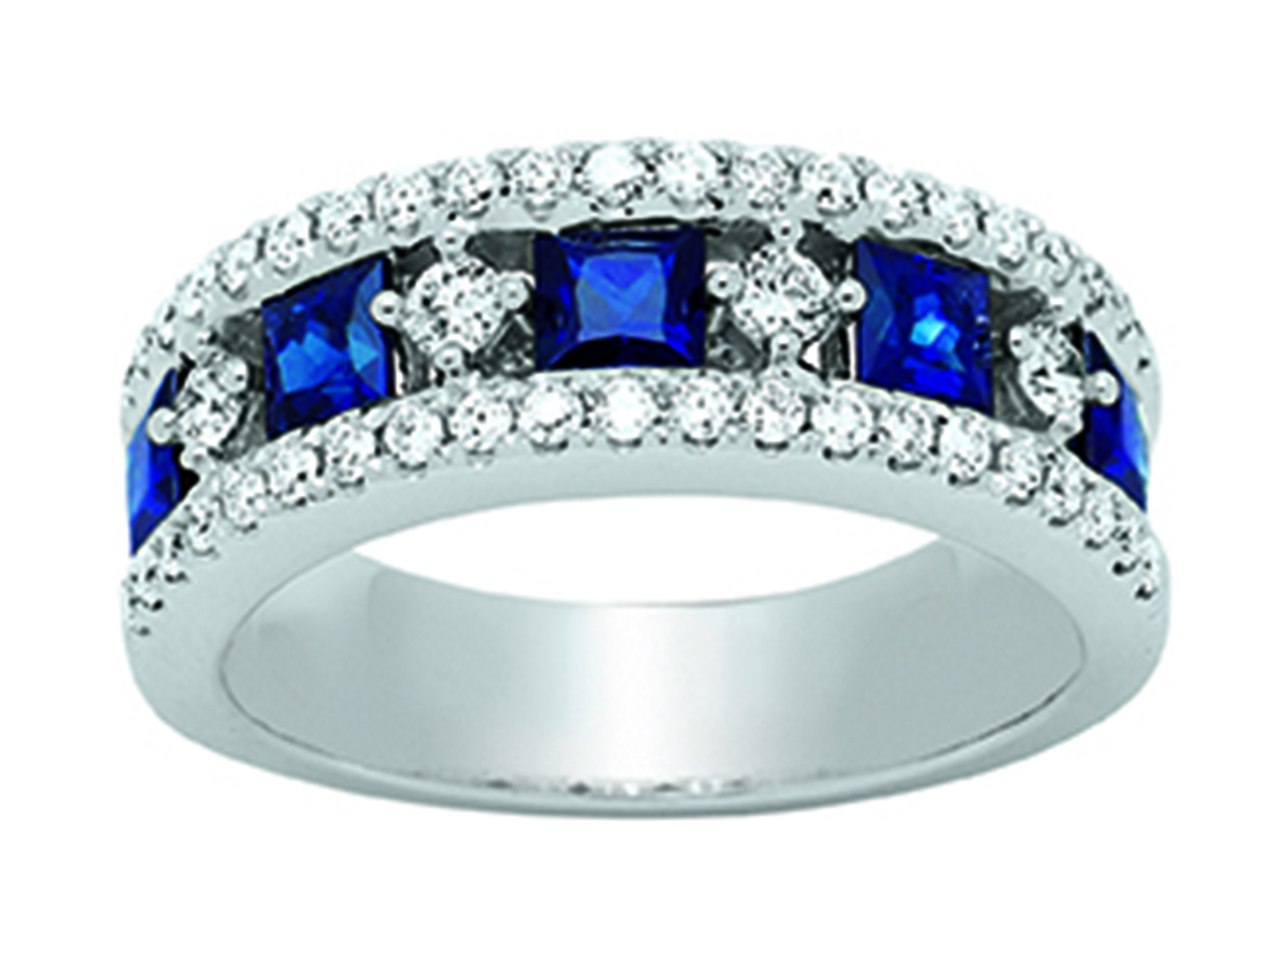 Bague Or girs 18k, saphirs 1,43ct, diamants 0,57ct, doigt 56